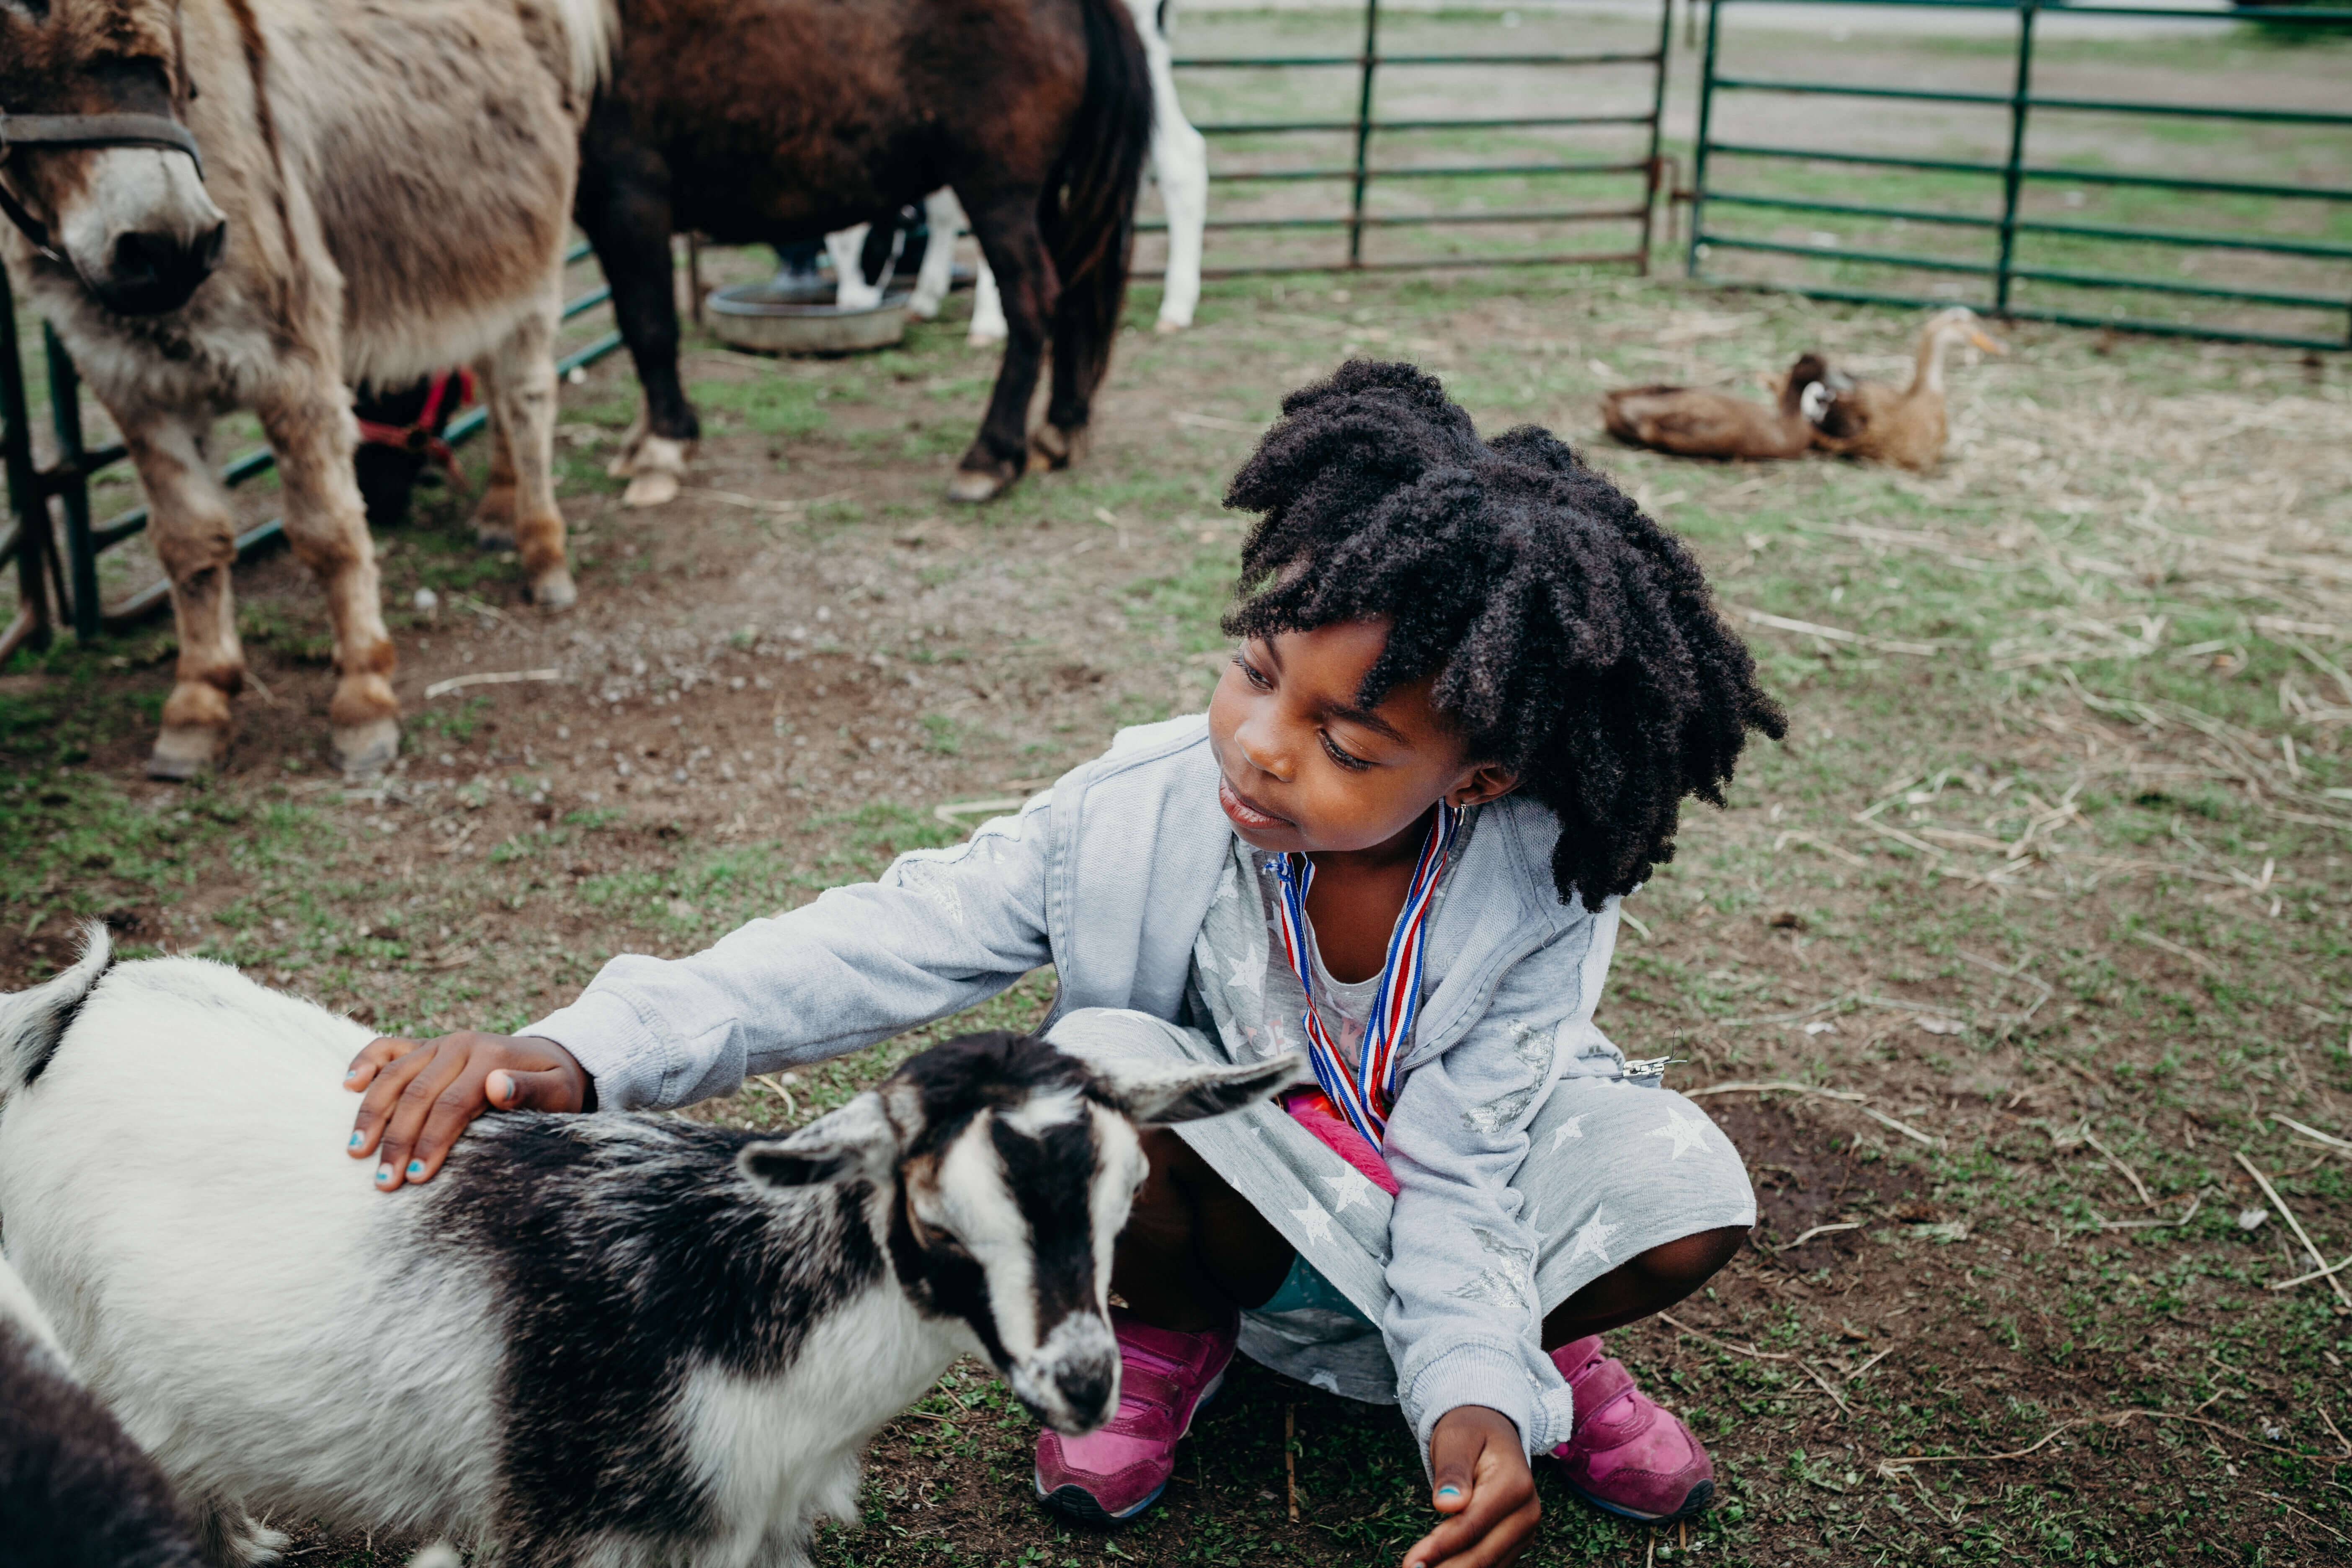 Petting zoo in the Kids Zone